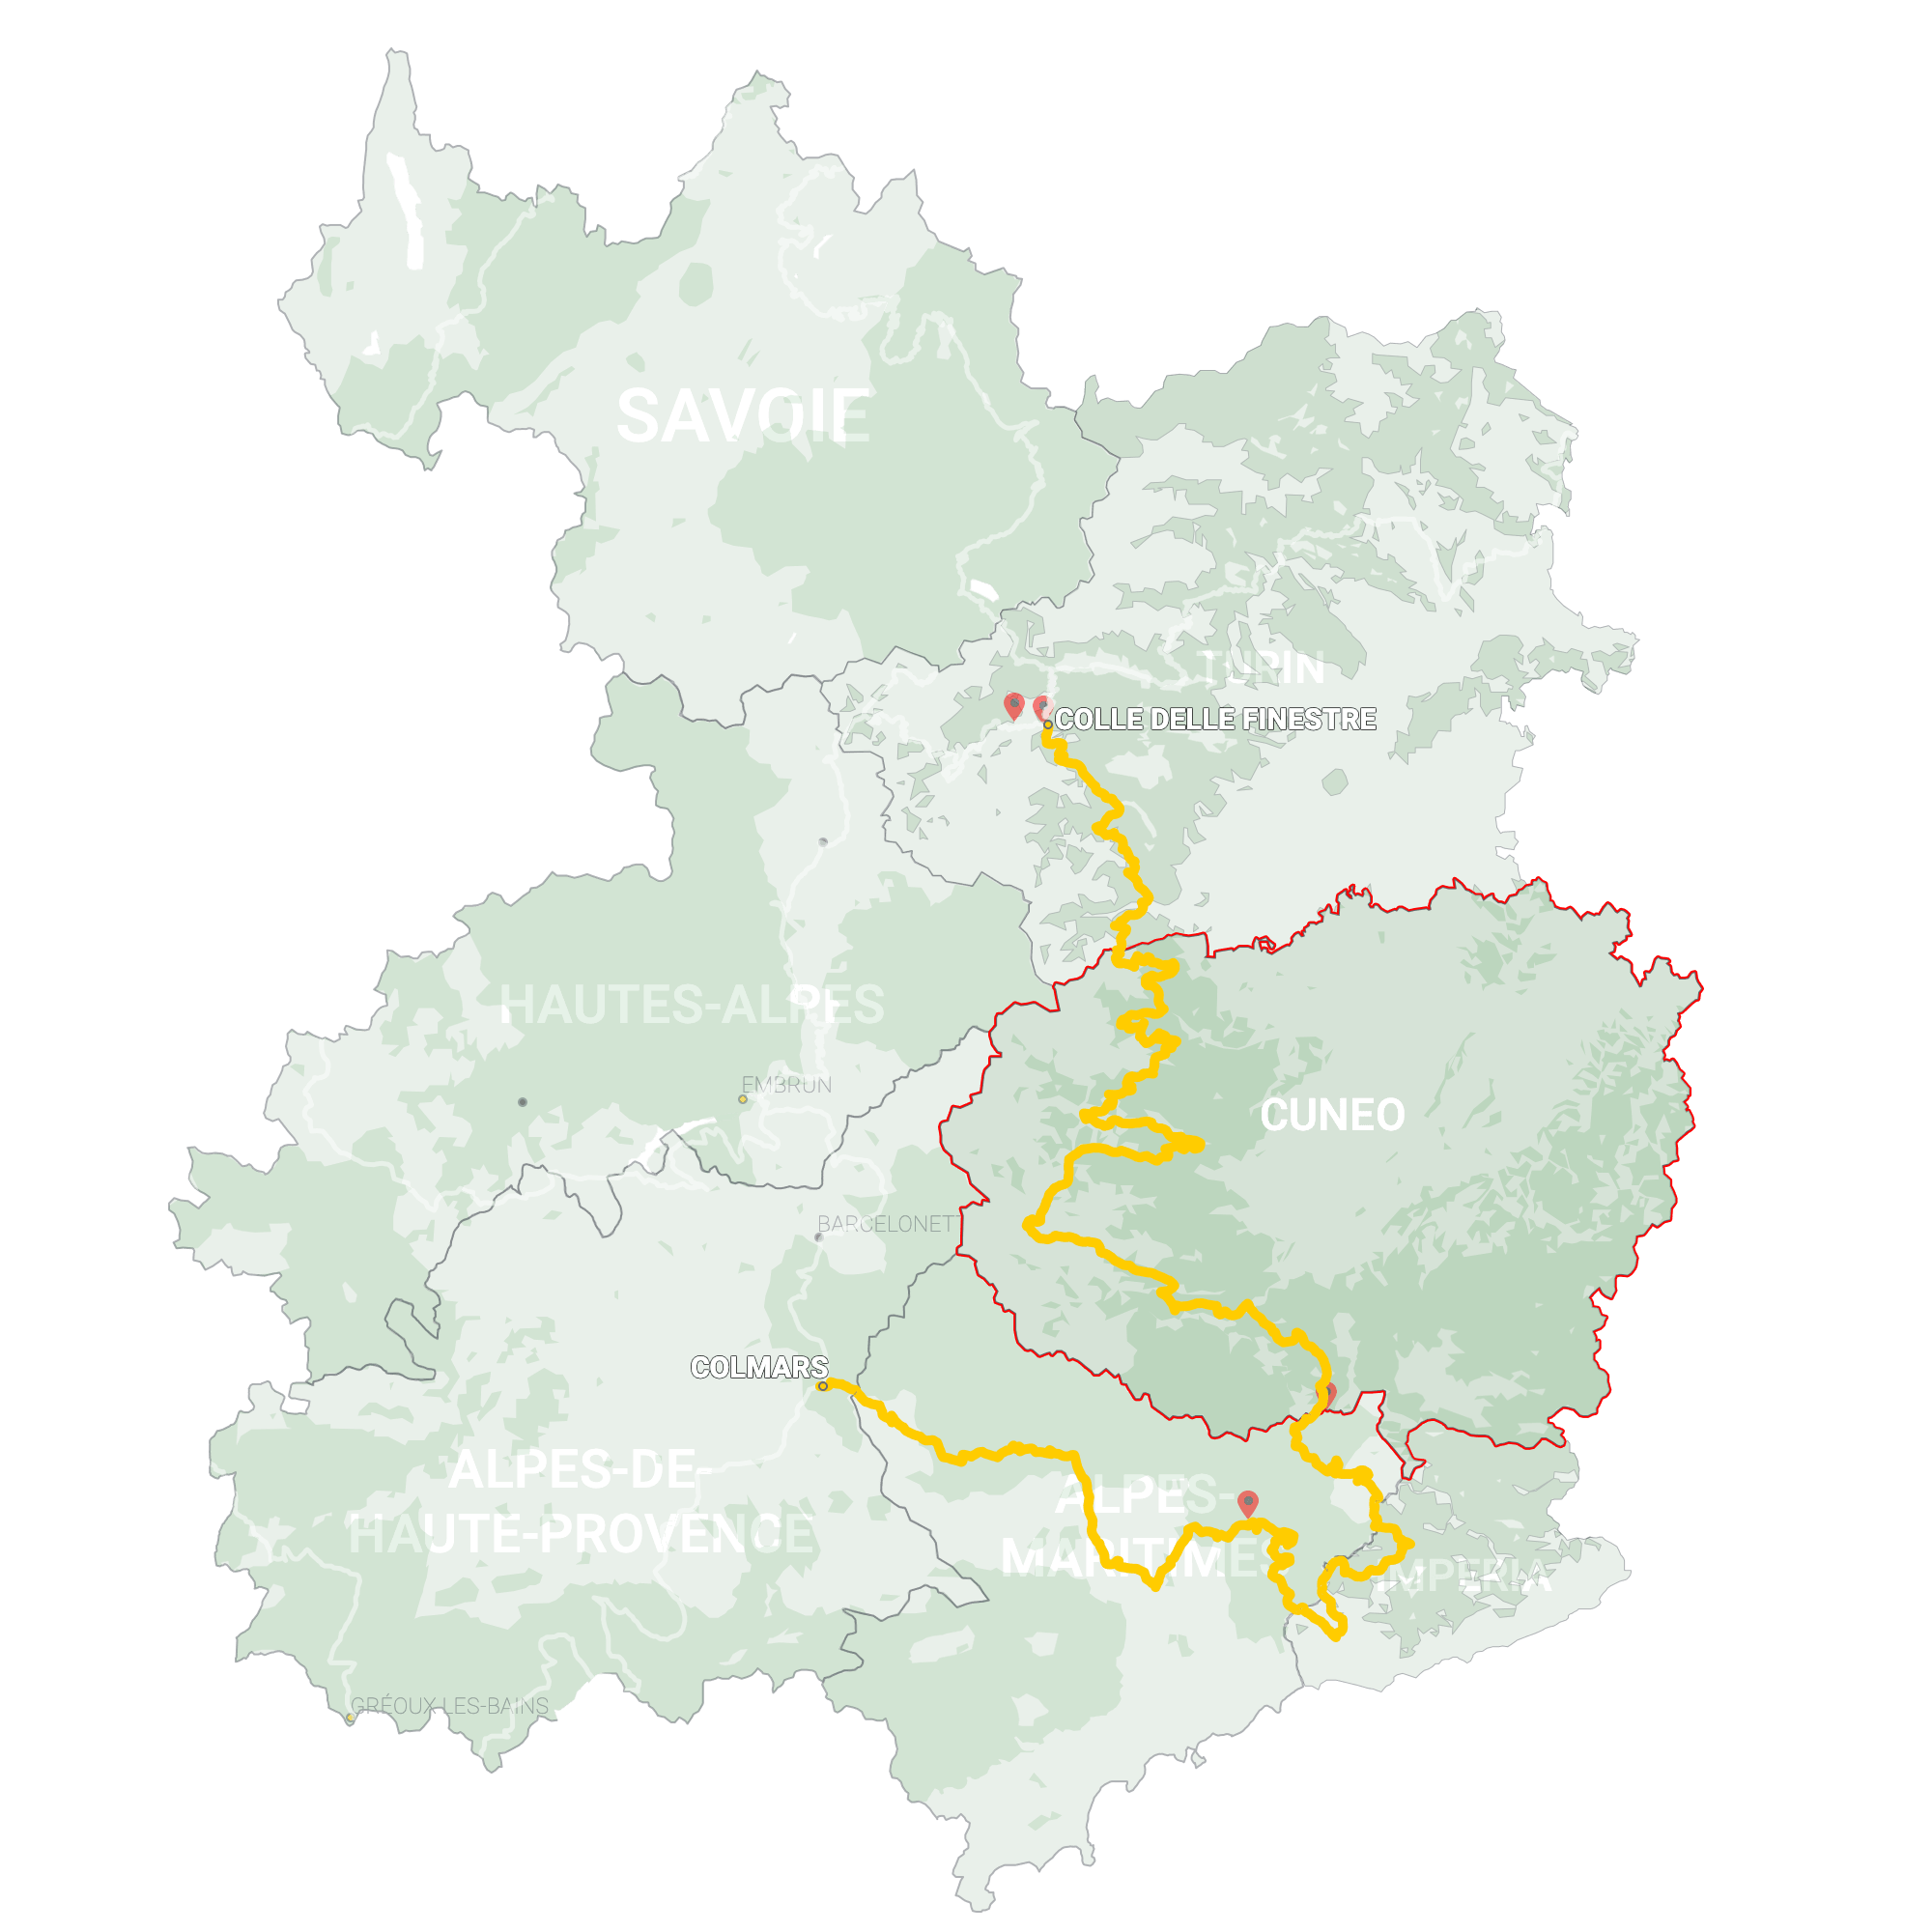 GLR 9 Region Cuneo Map Overview